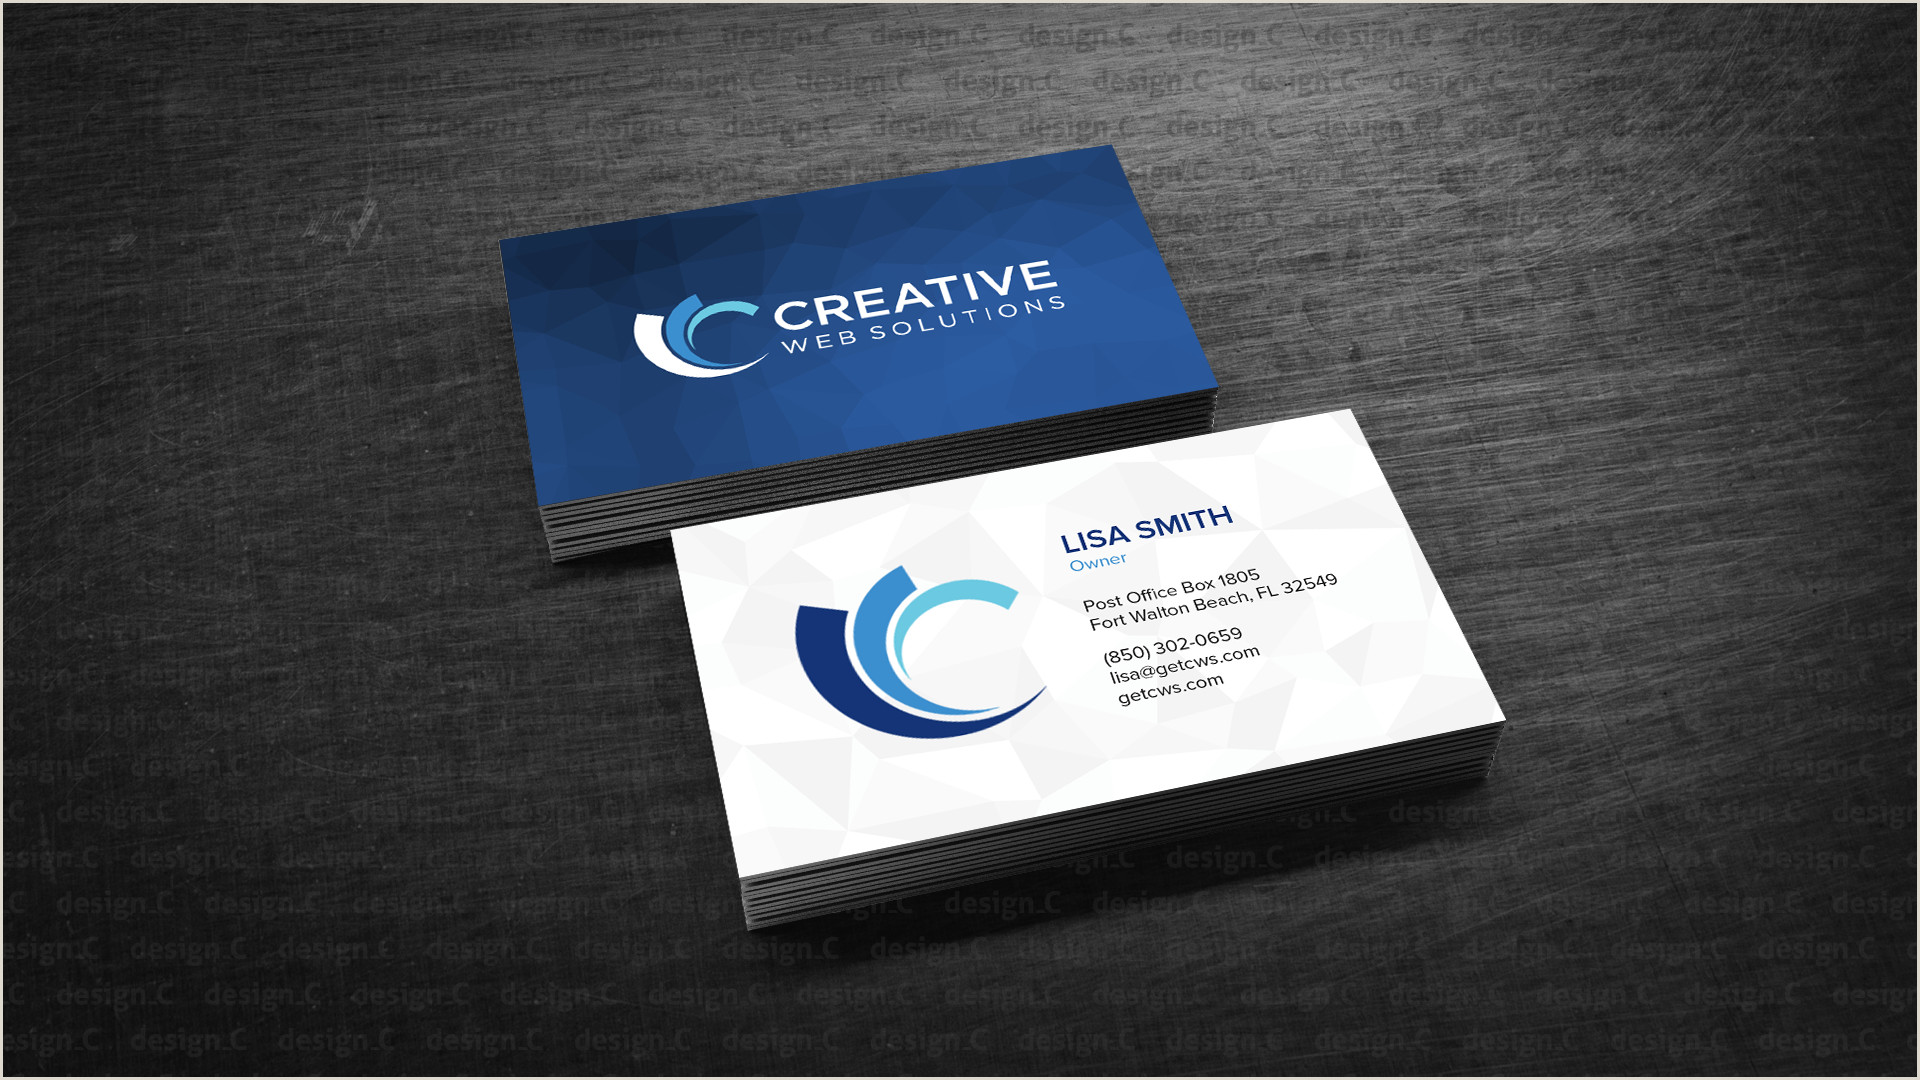 Graphic Business Cards Lab Design Professional